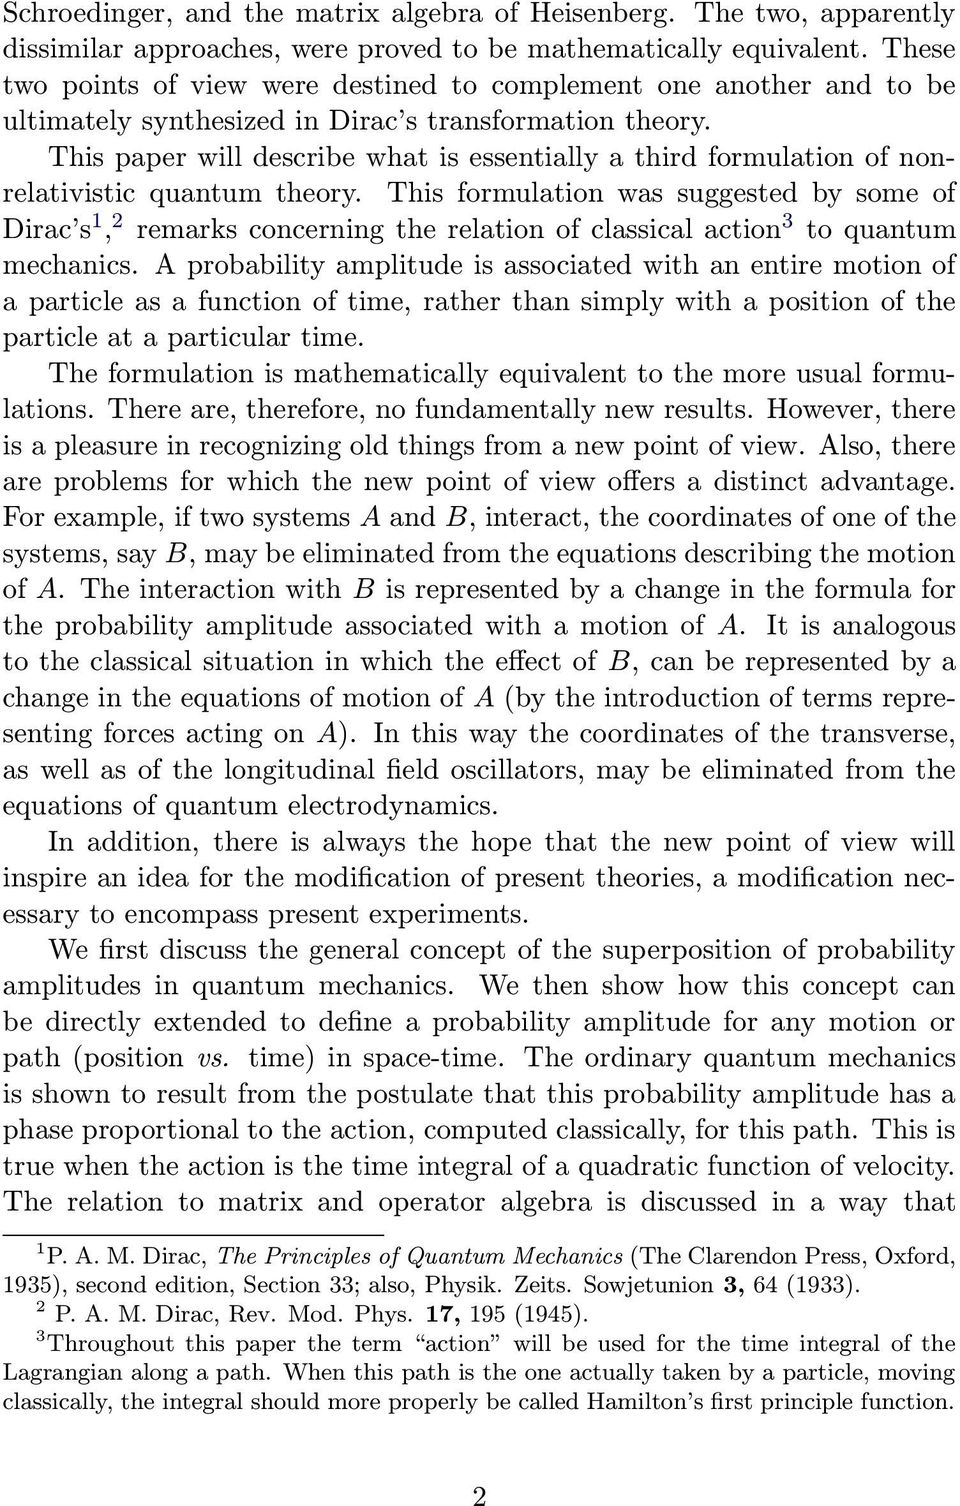 This paper will describe what is essentially a third formulation of nonrelativistic quantum theory.